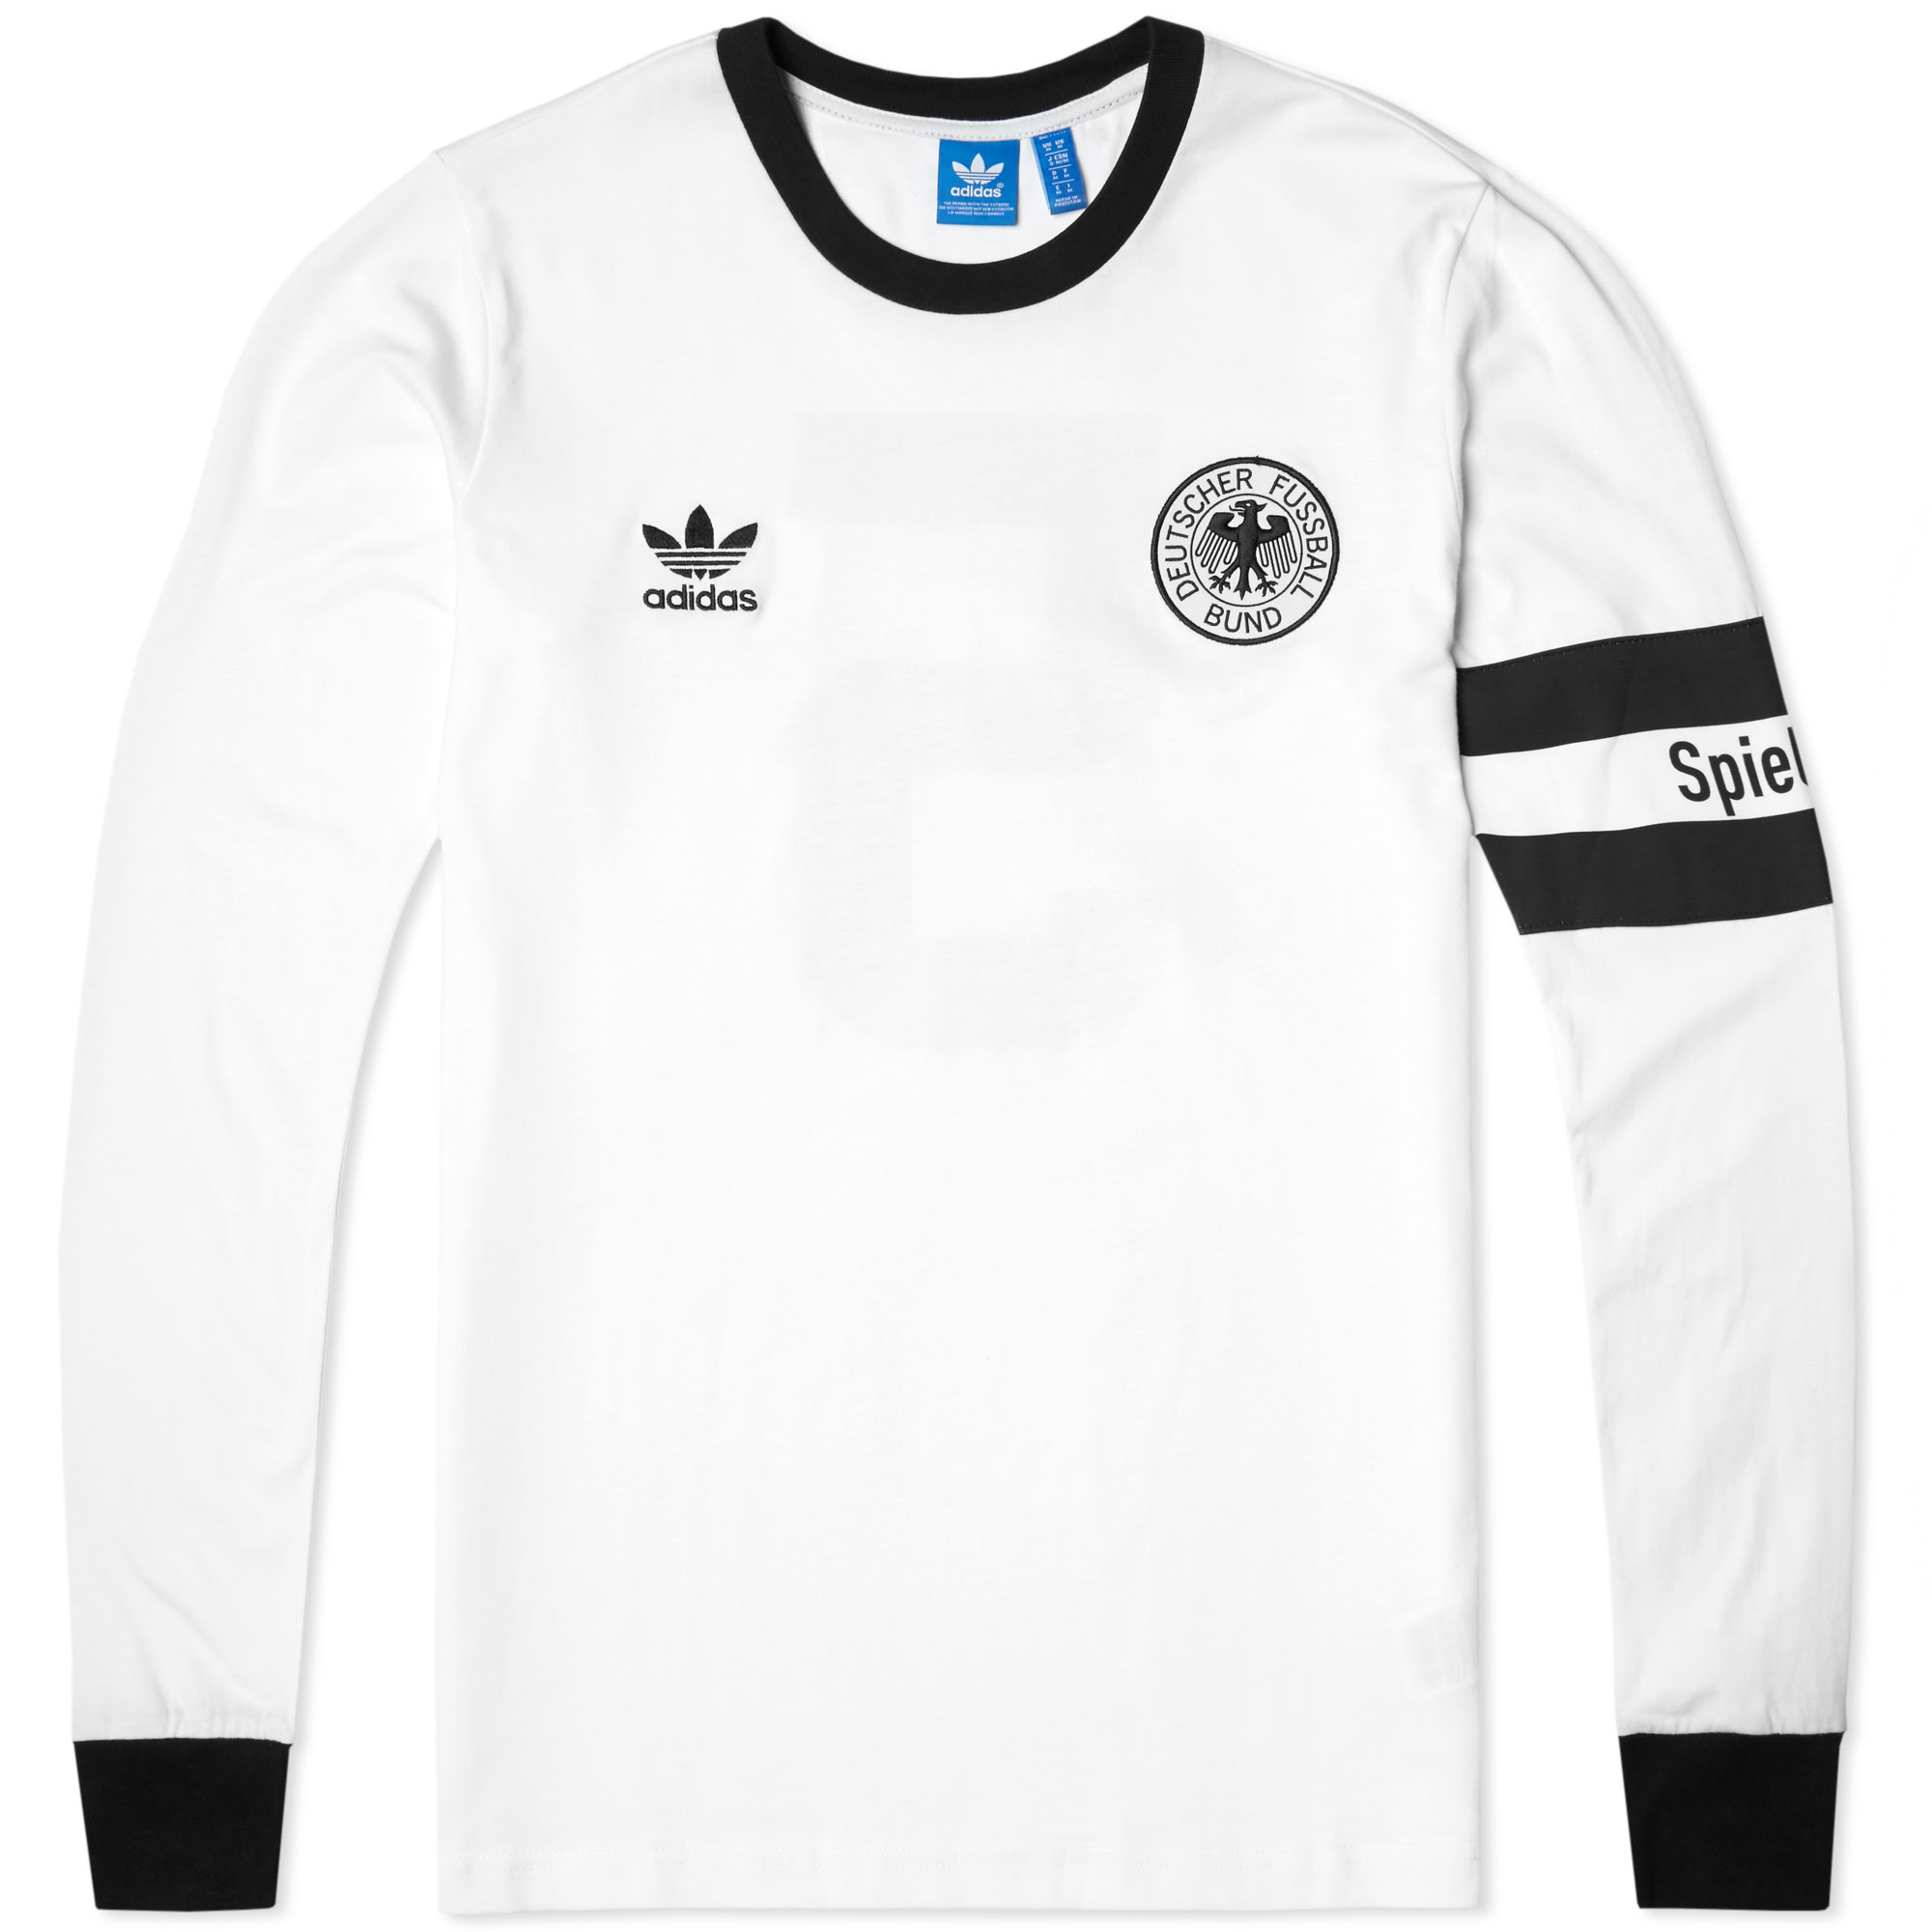 101caa6e6 Adidas Originals Wm 1990 Retro Germany T Shirt Print White – EDGE ...